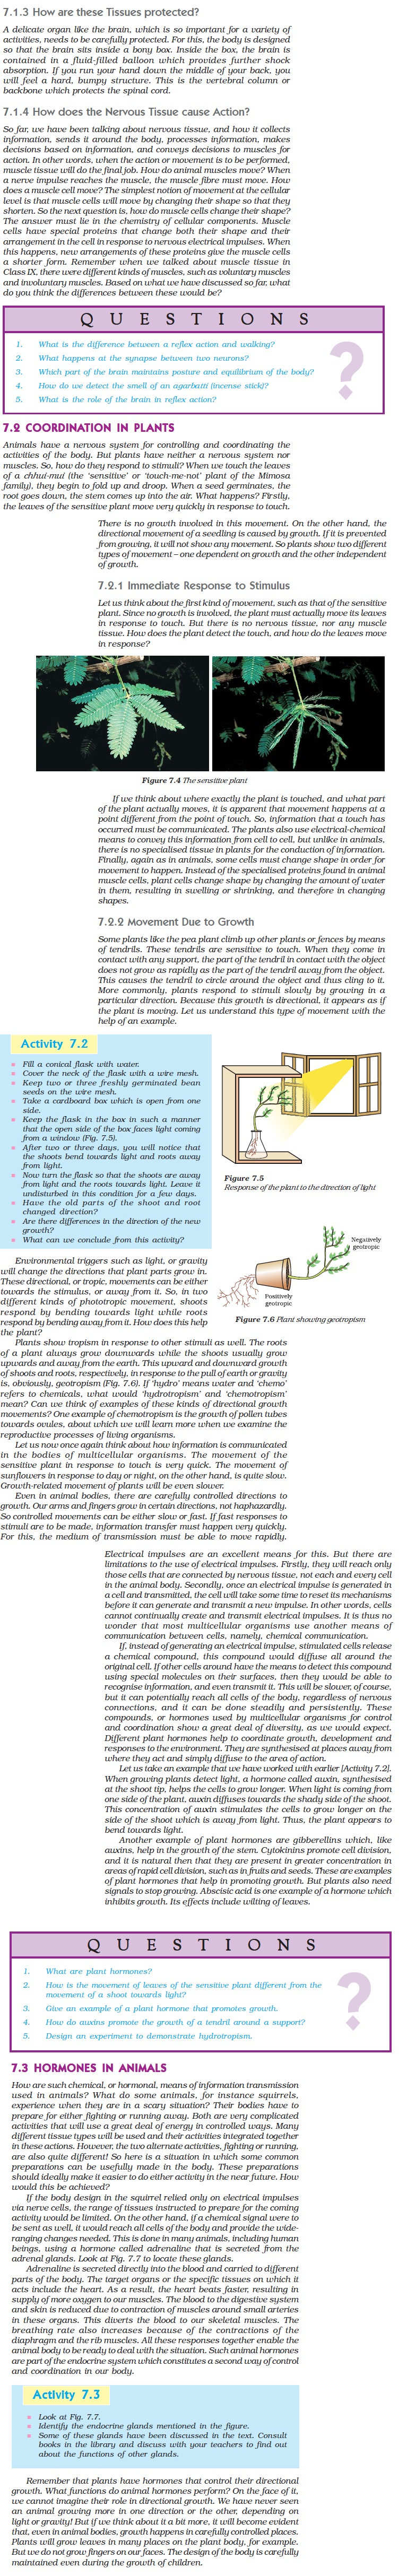 NCERT Class X Science Chapter 7 - Control and Coordination